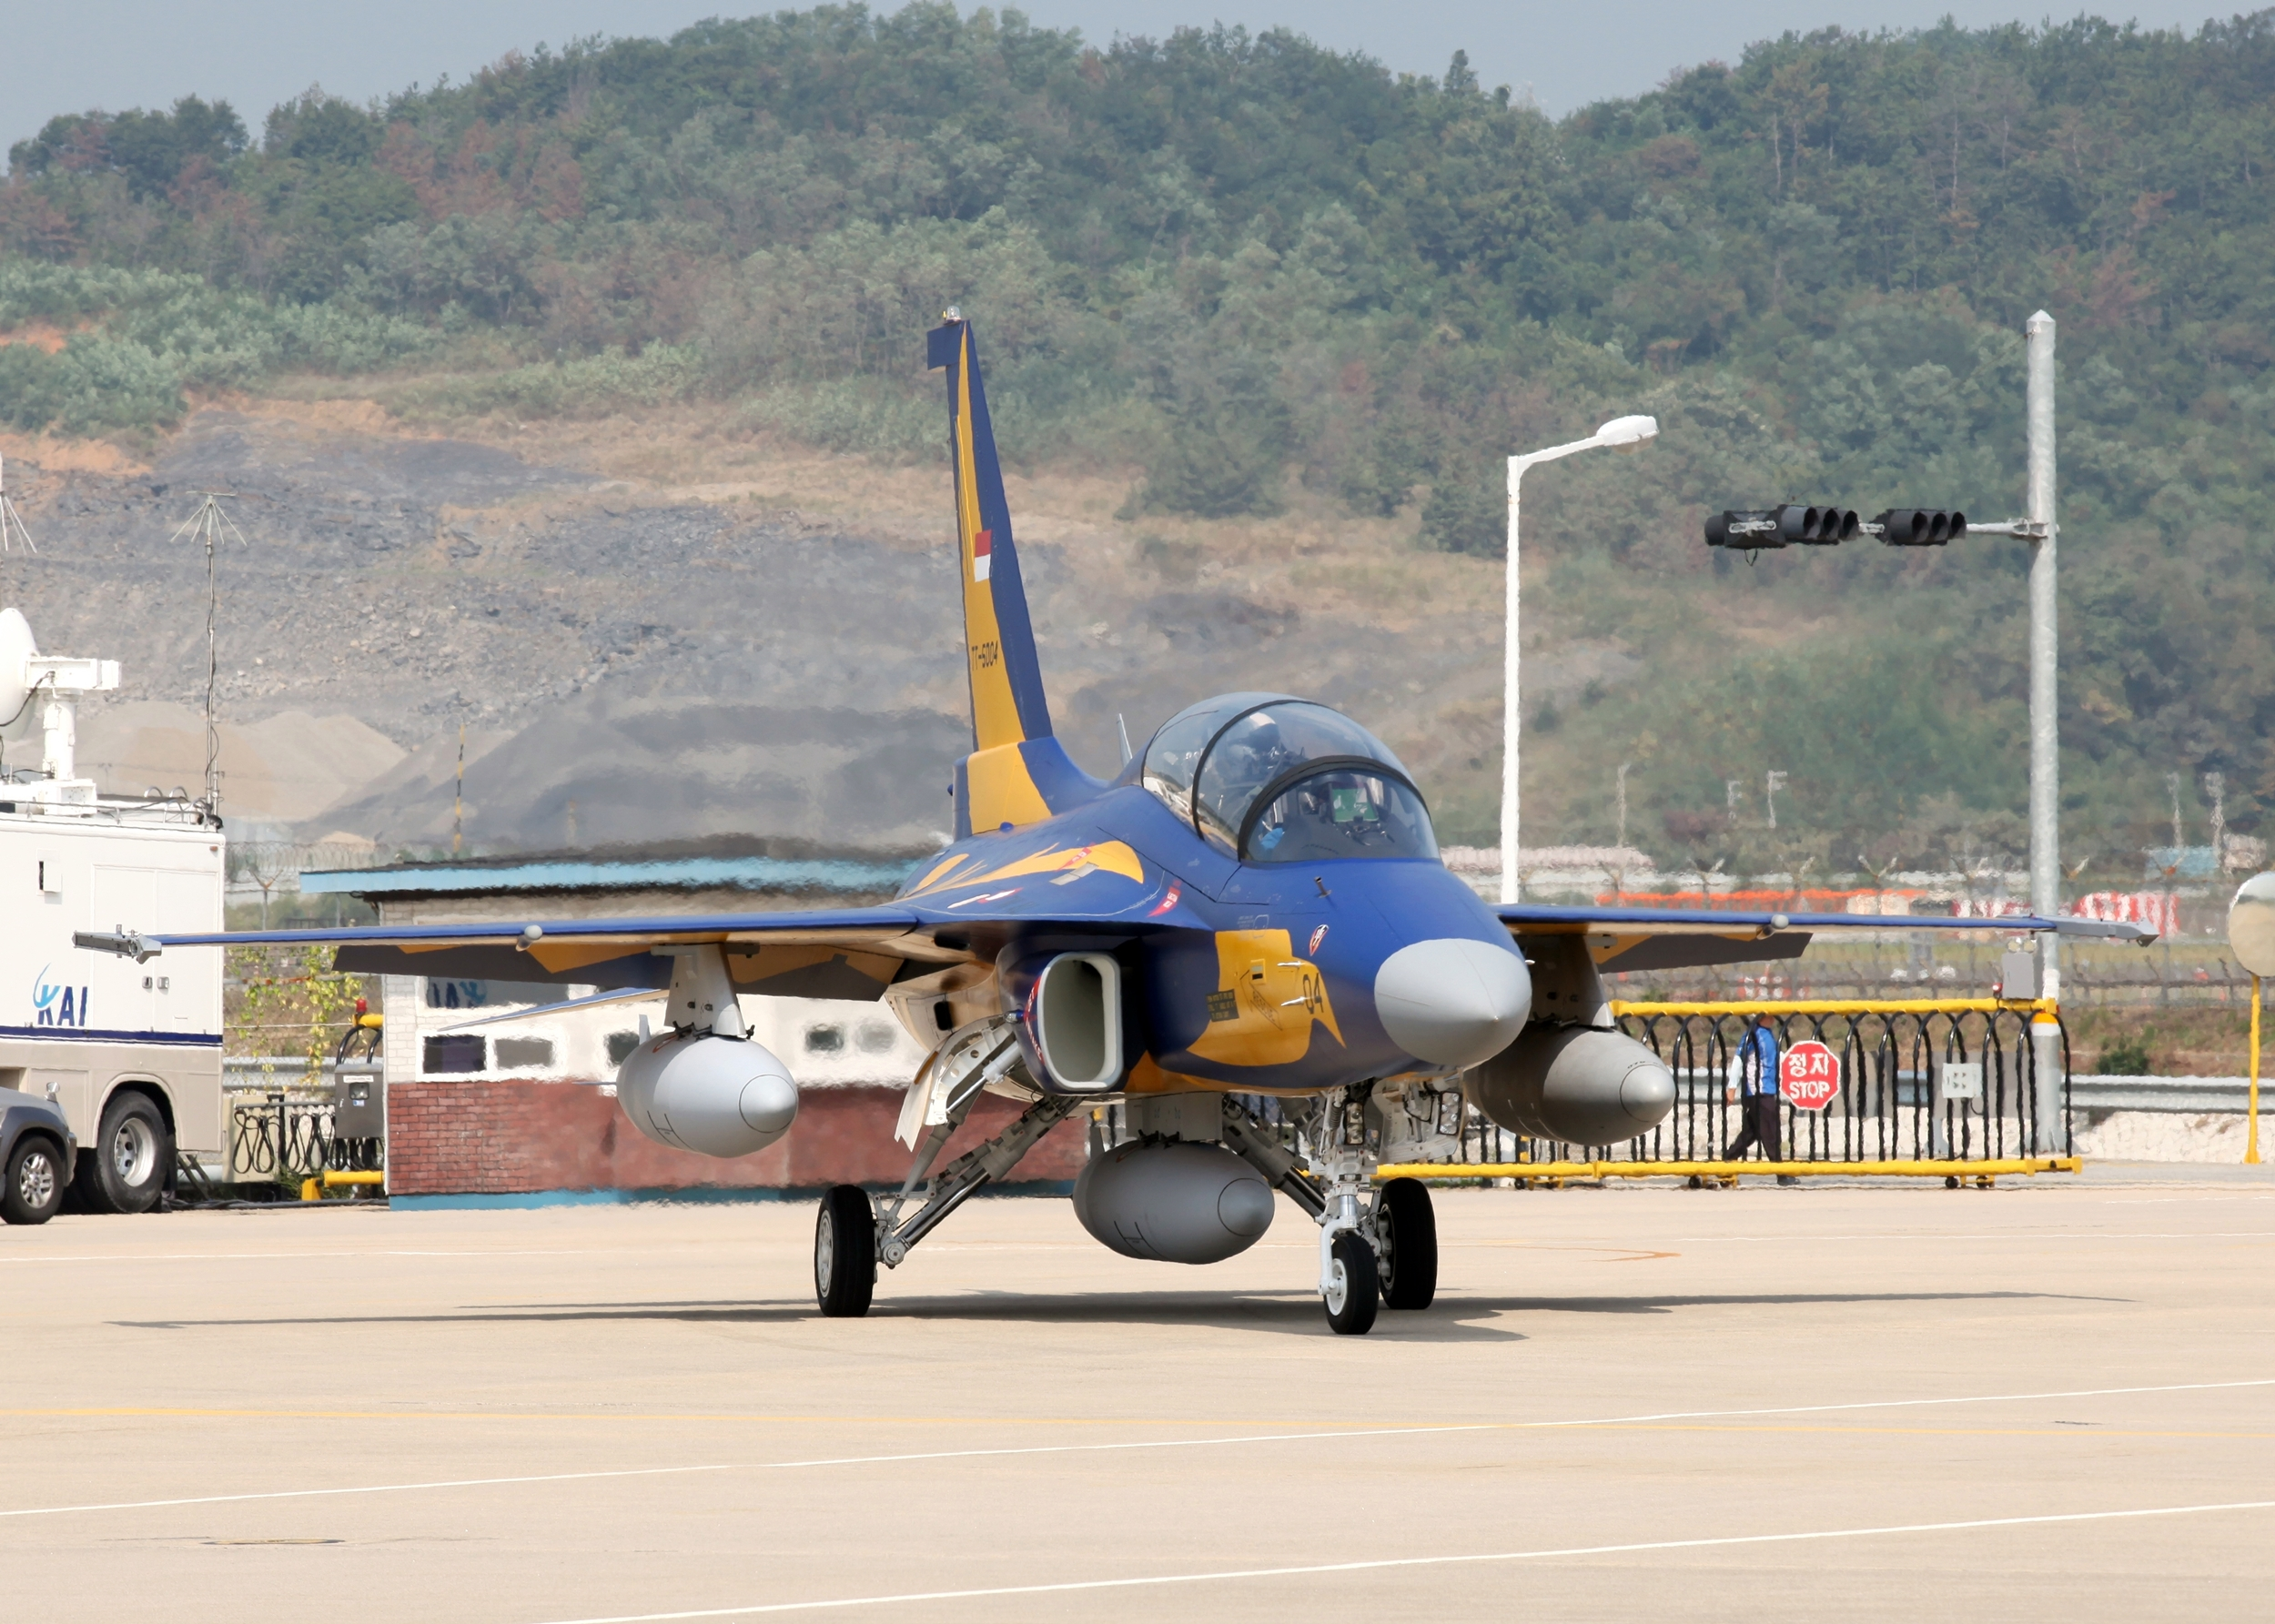 File:T-50i Indonesian Air force version.jpg